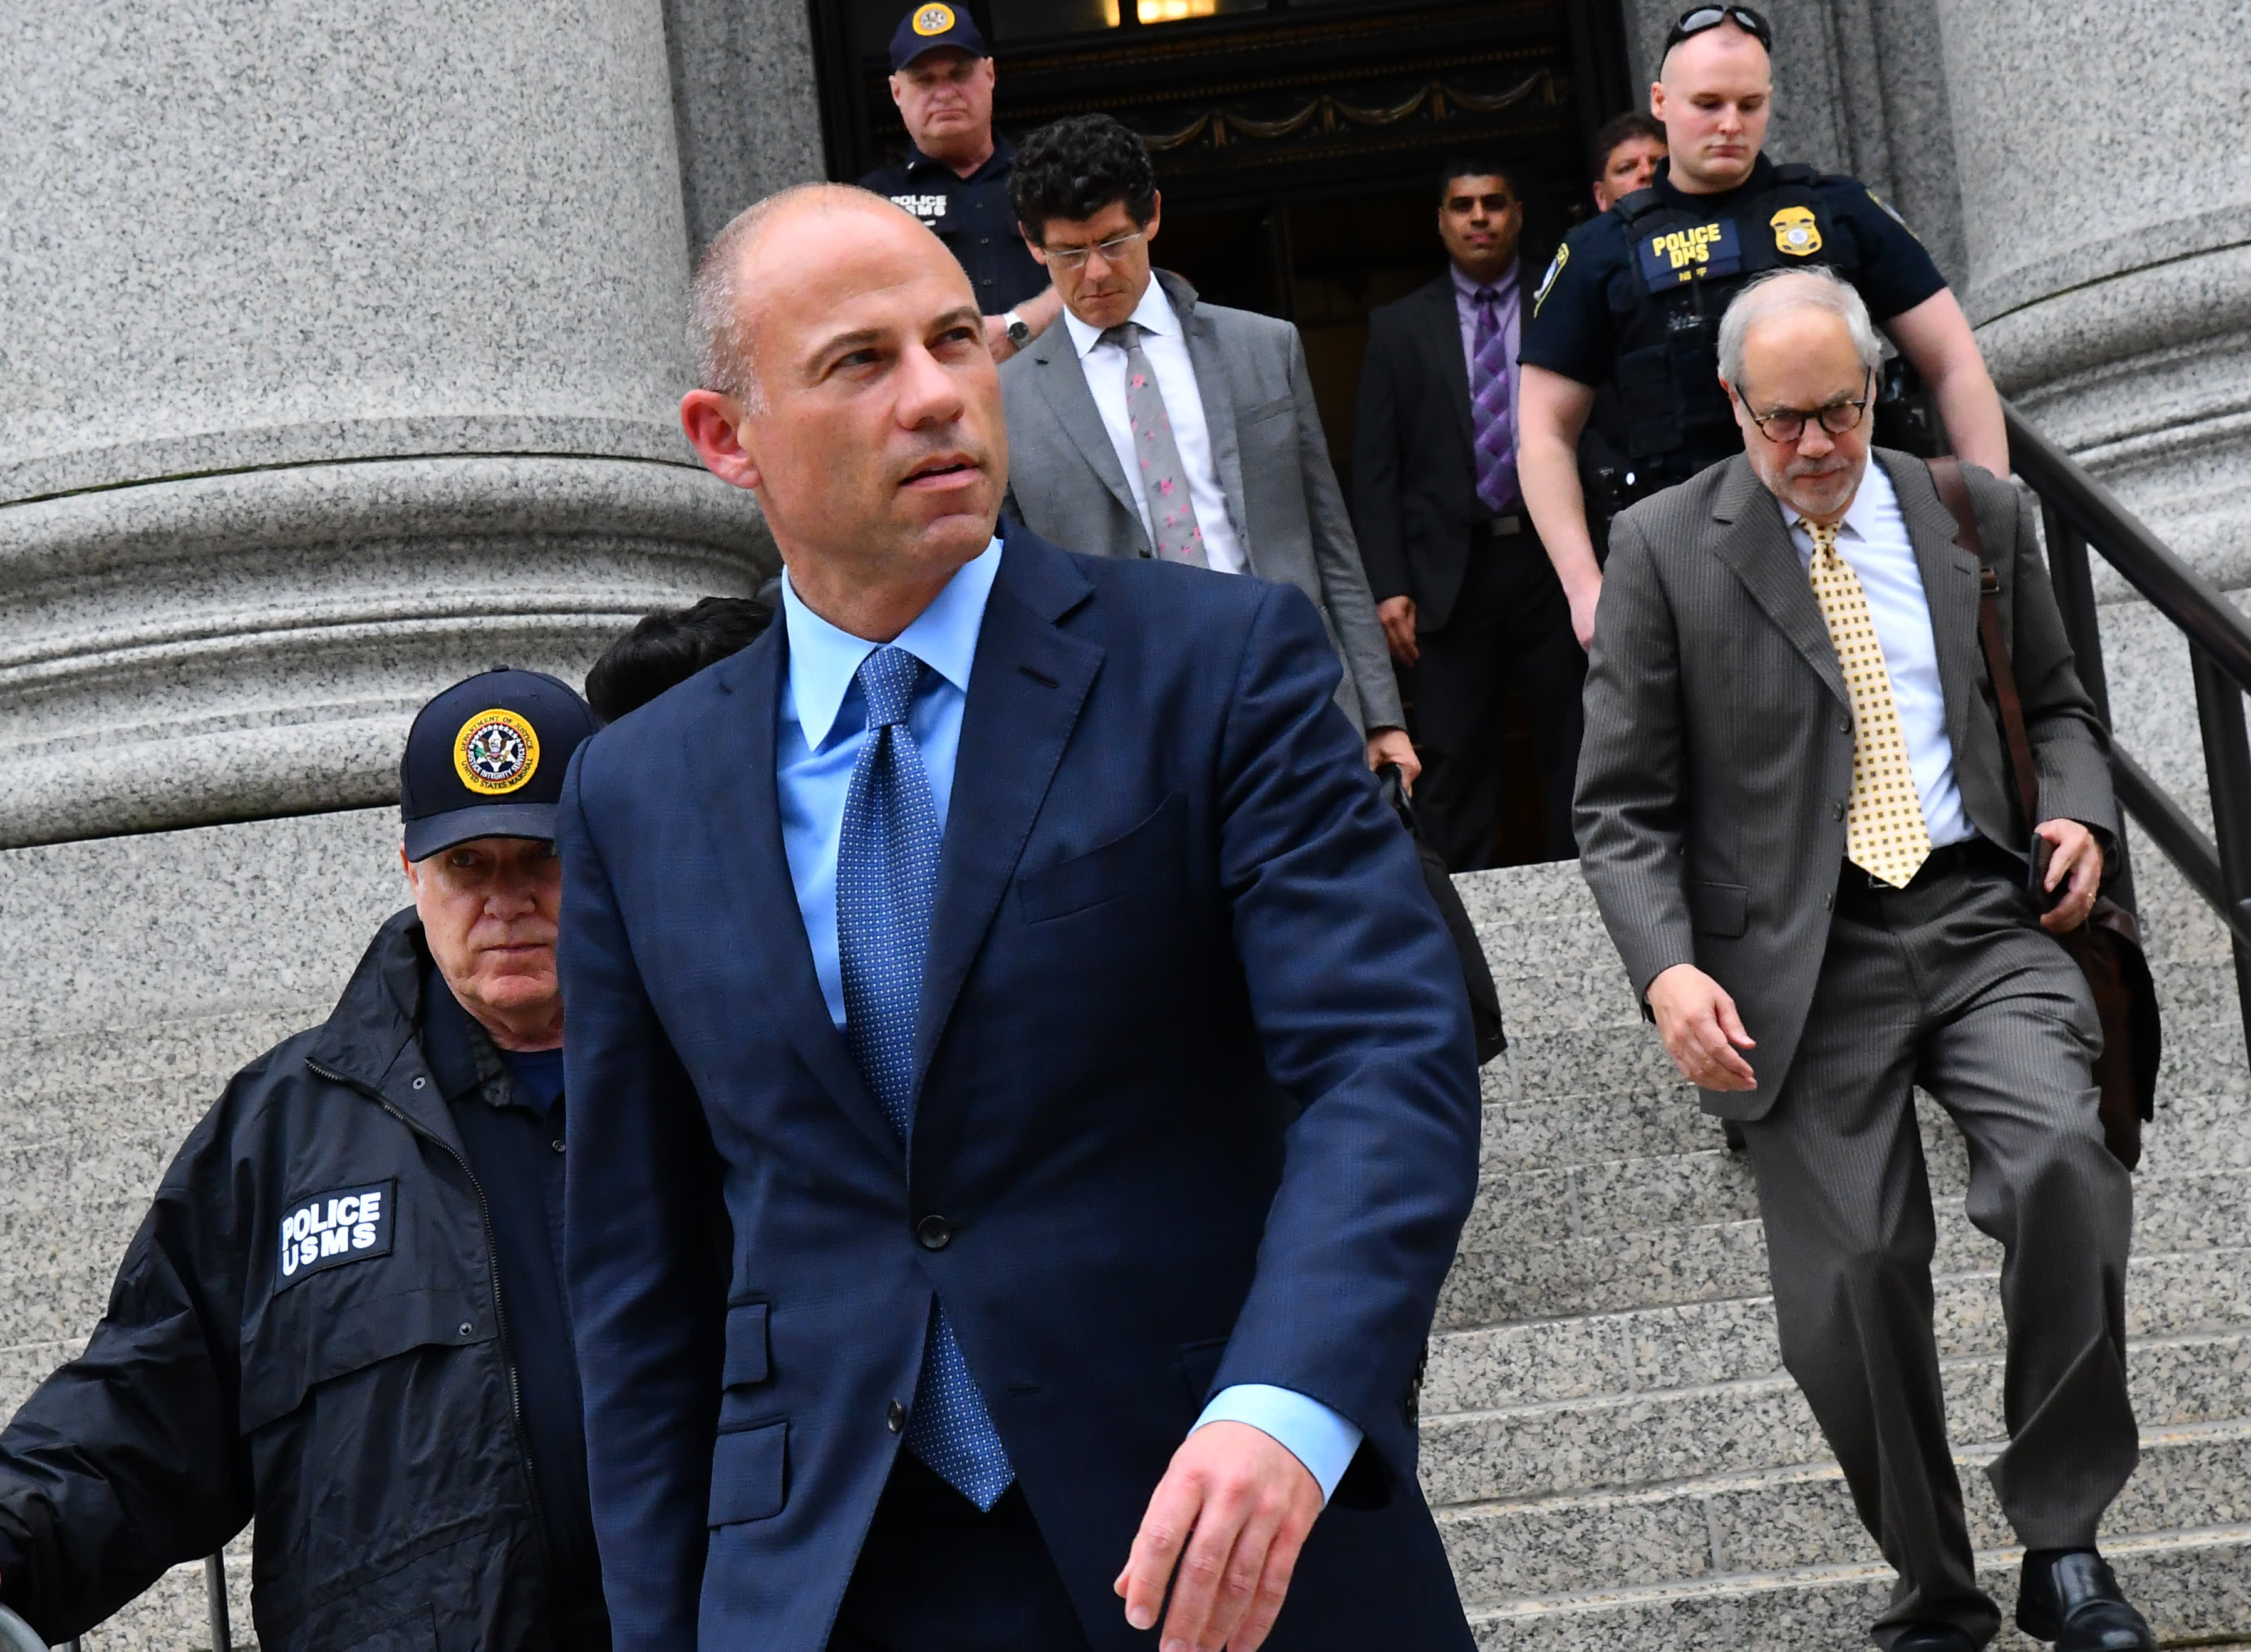 Michael Avenatti searched web for 'insider trading' and 'Nike put options' while trying to extort shoe giant, feds say